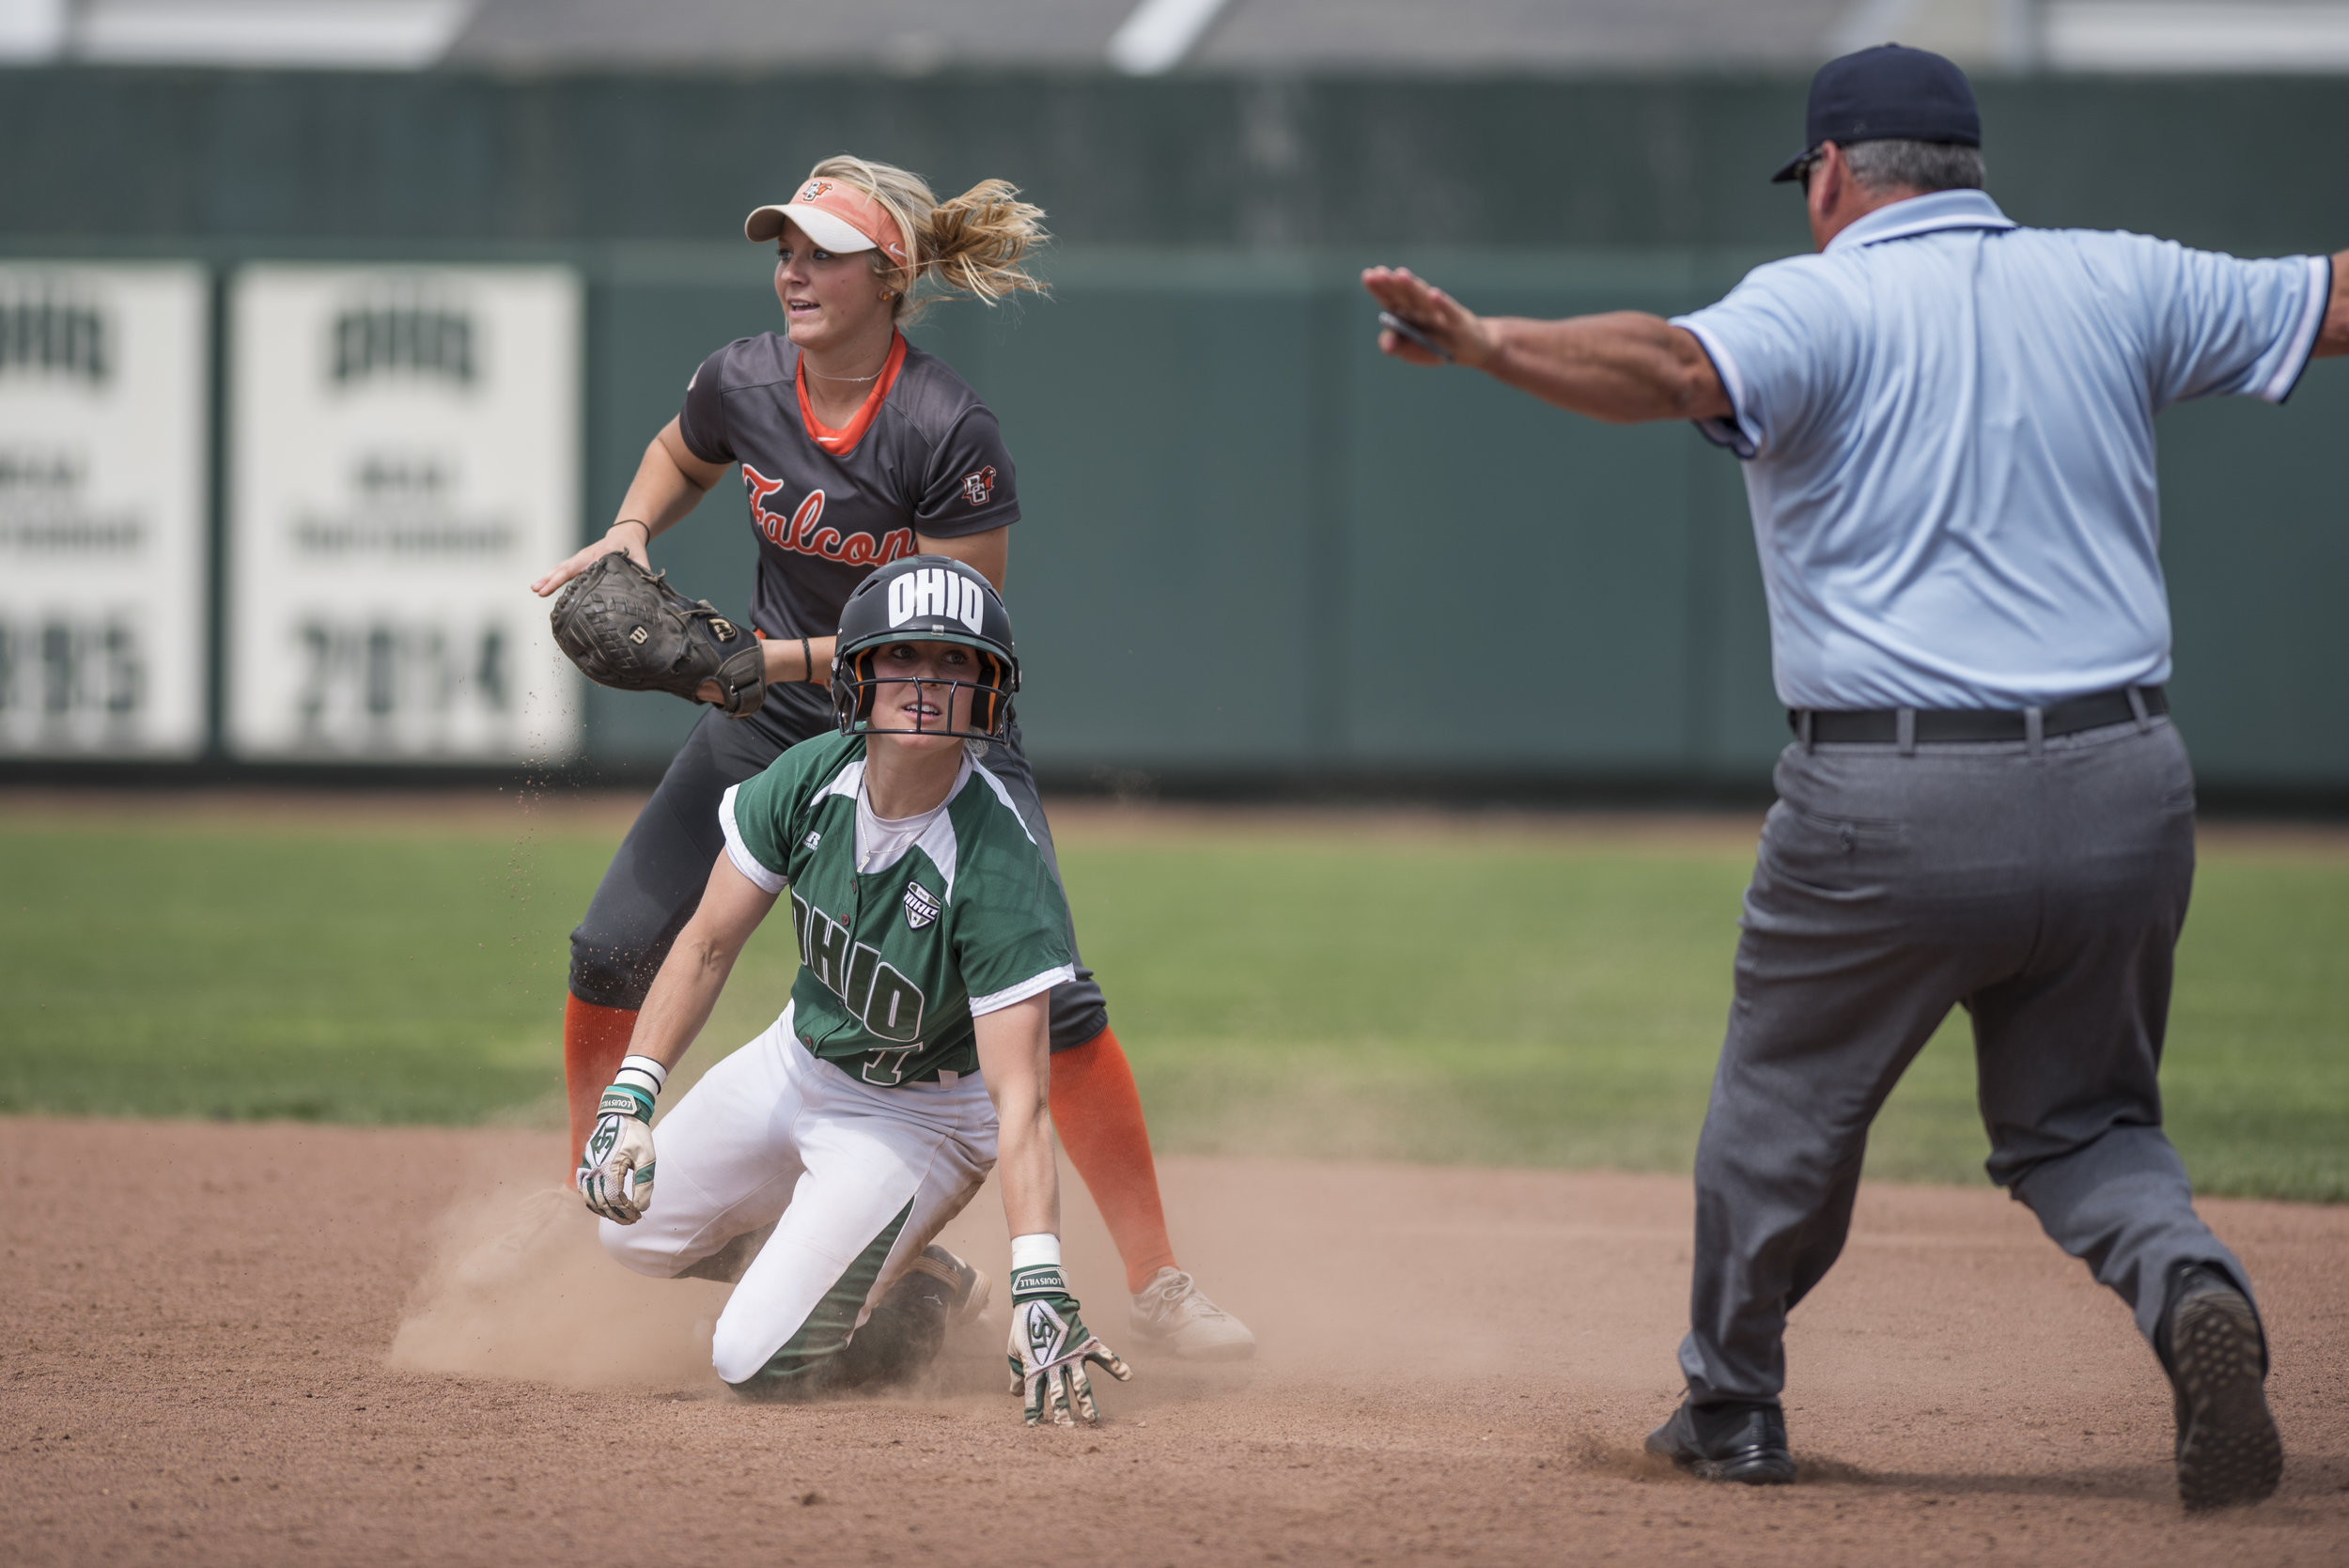 Ohio University's Taylor Saxton safely slides into second base during the Bobcats game against Bowling Green on April 21, 2017. The Bobcats won 7-1.